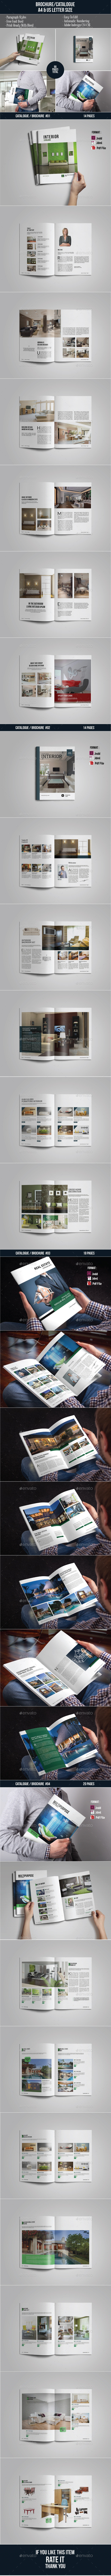 Catalogue Brochure Bundle Vol 1